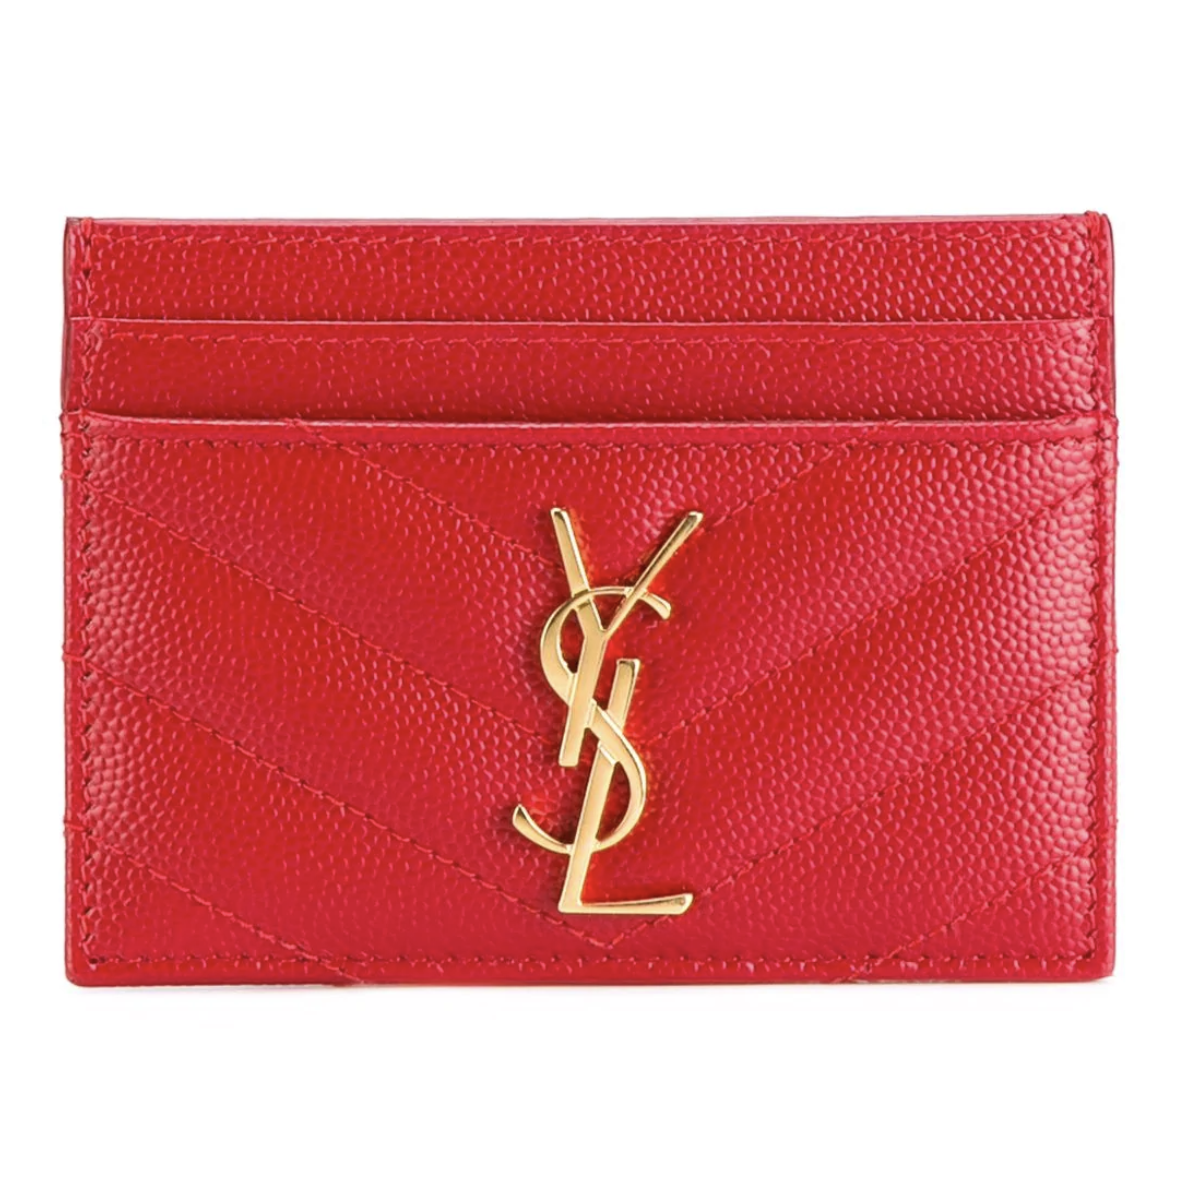 Saint Laurent Monogram Logo 卡夾